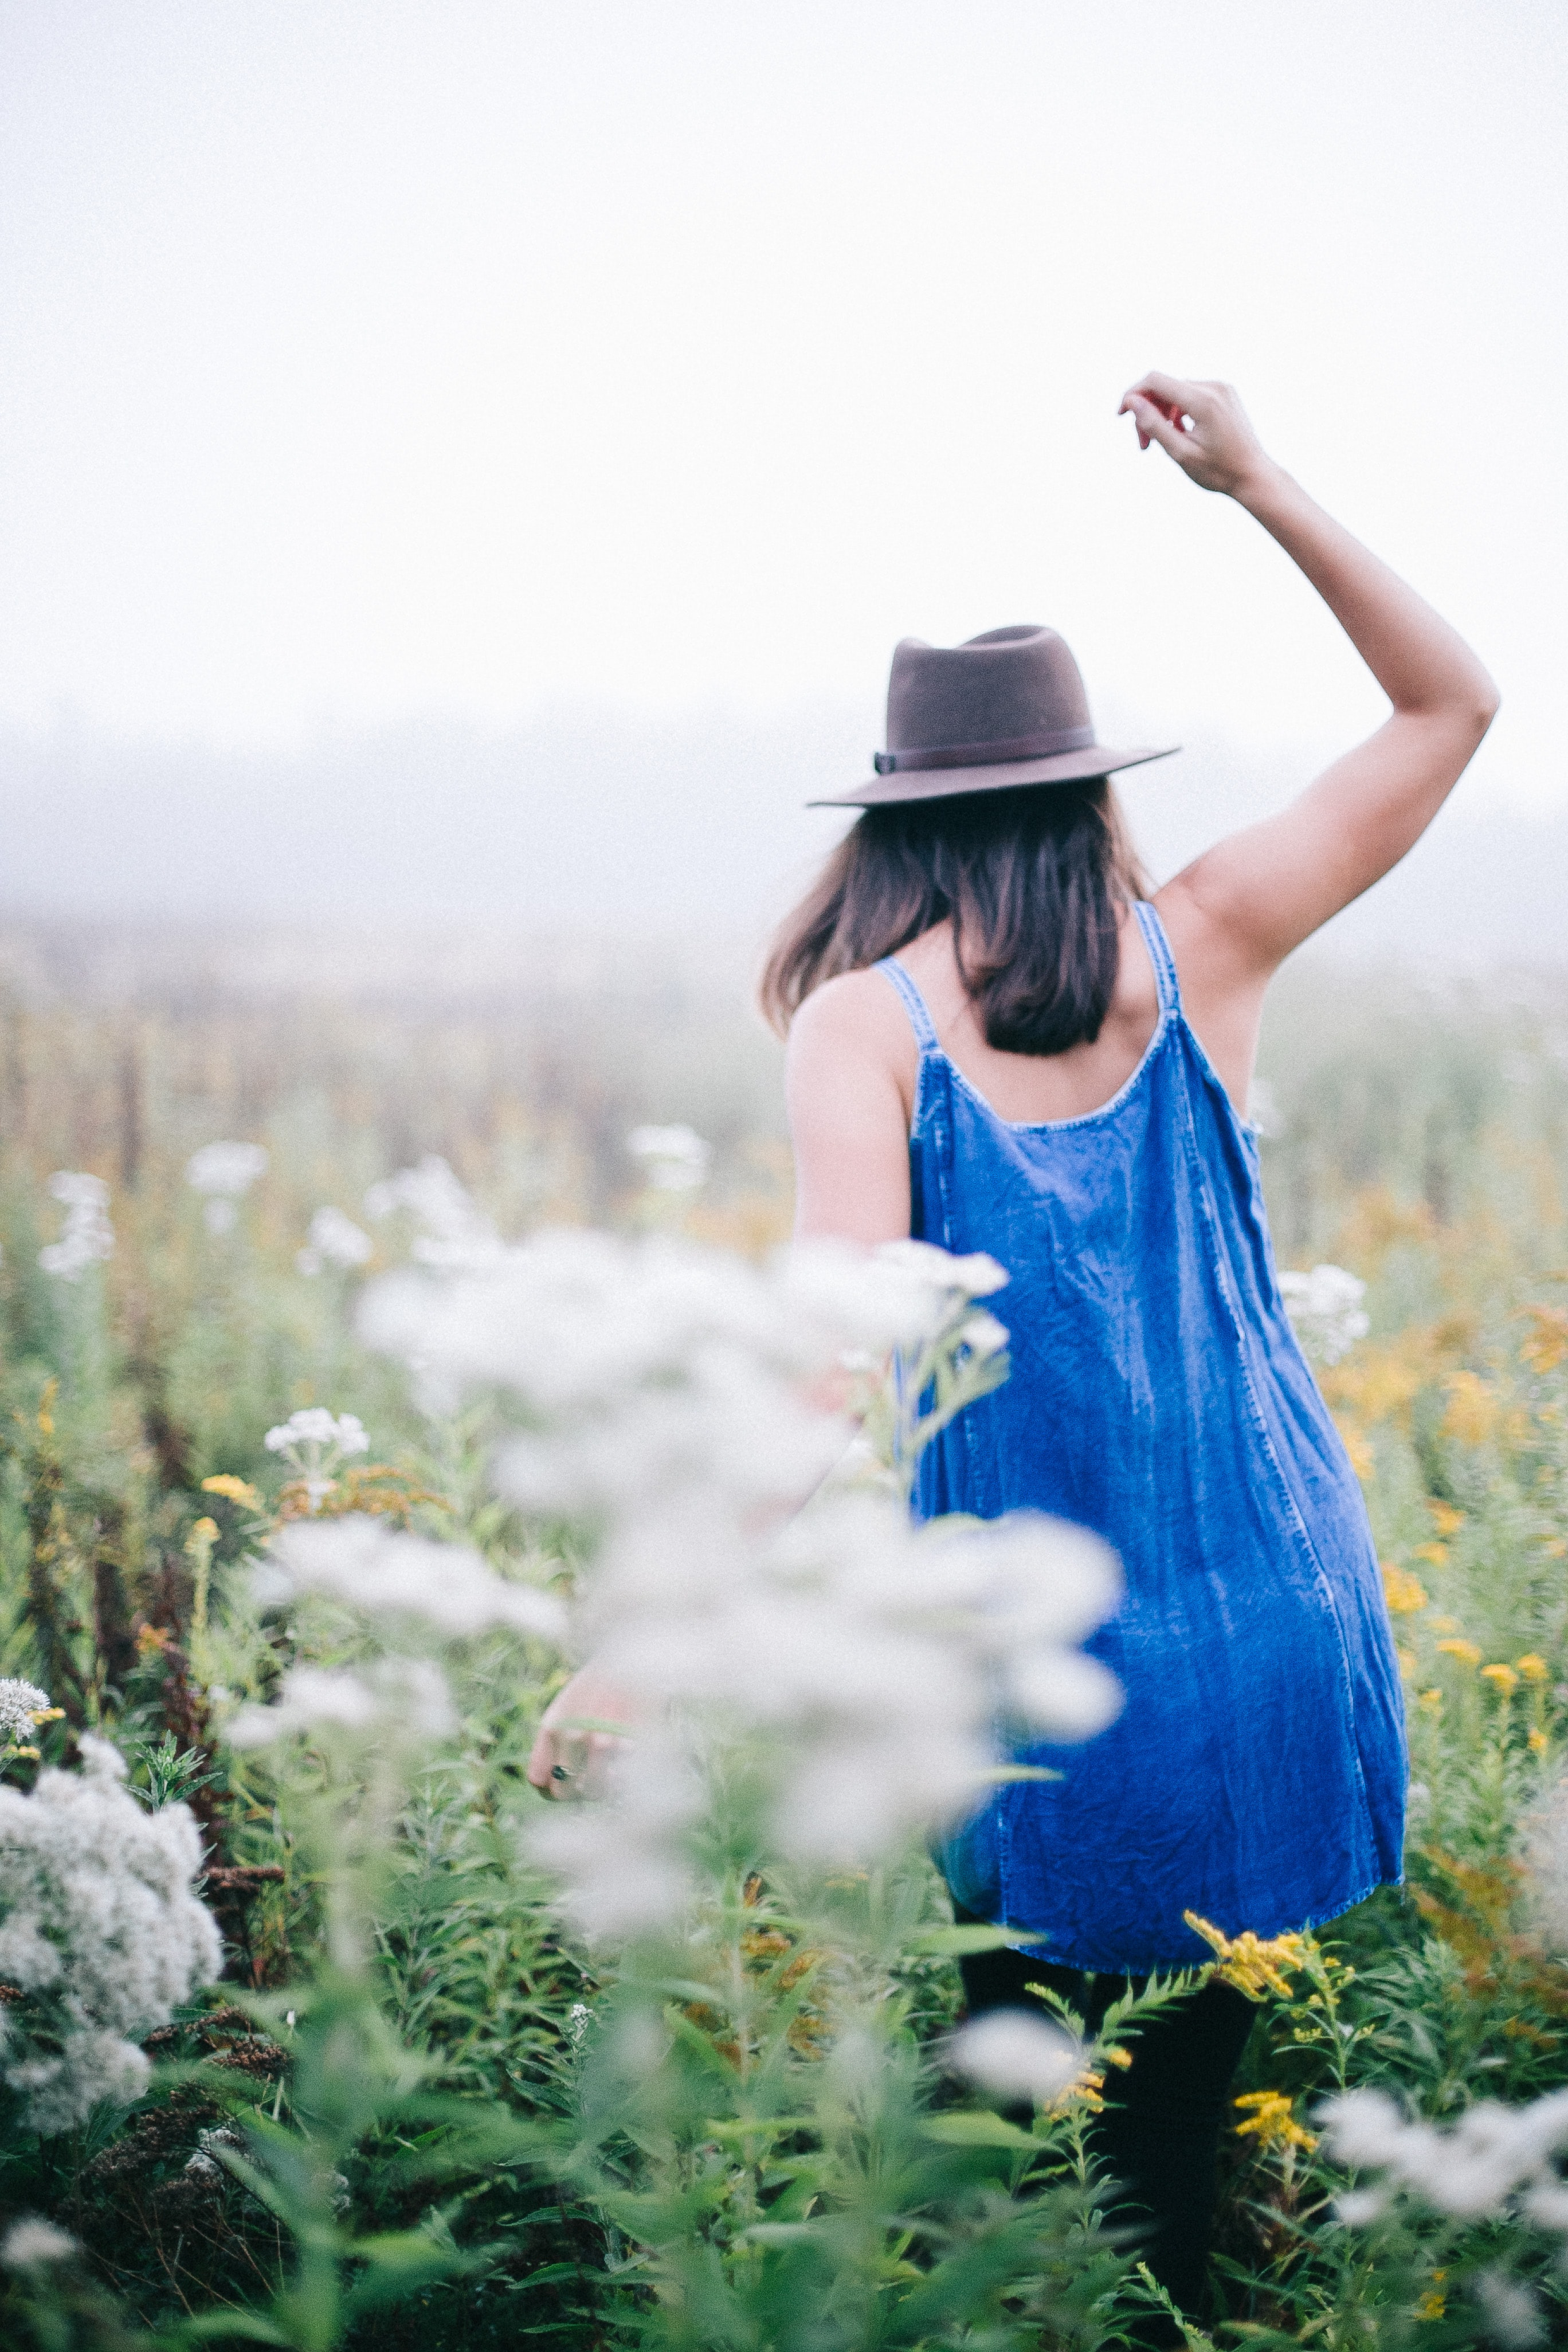 A girl wearing a hat and a blue dress walking in a meadow full of wildflowers